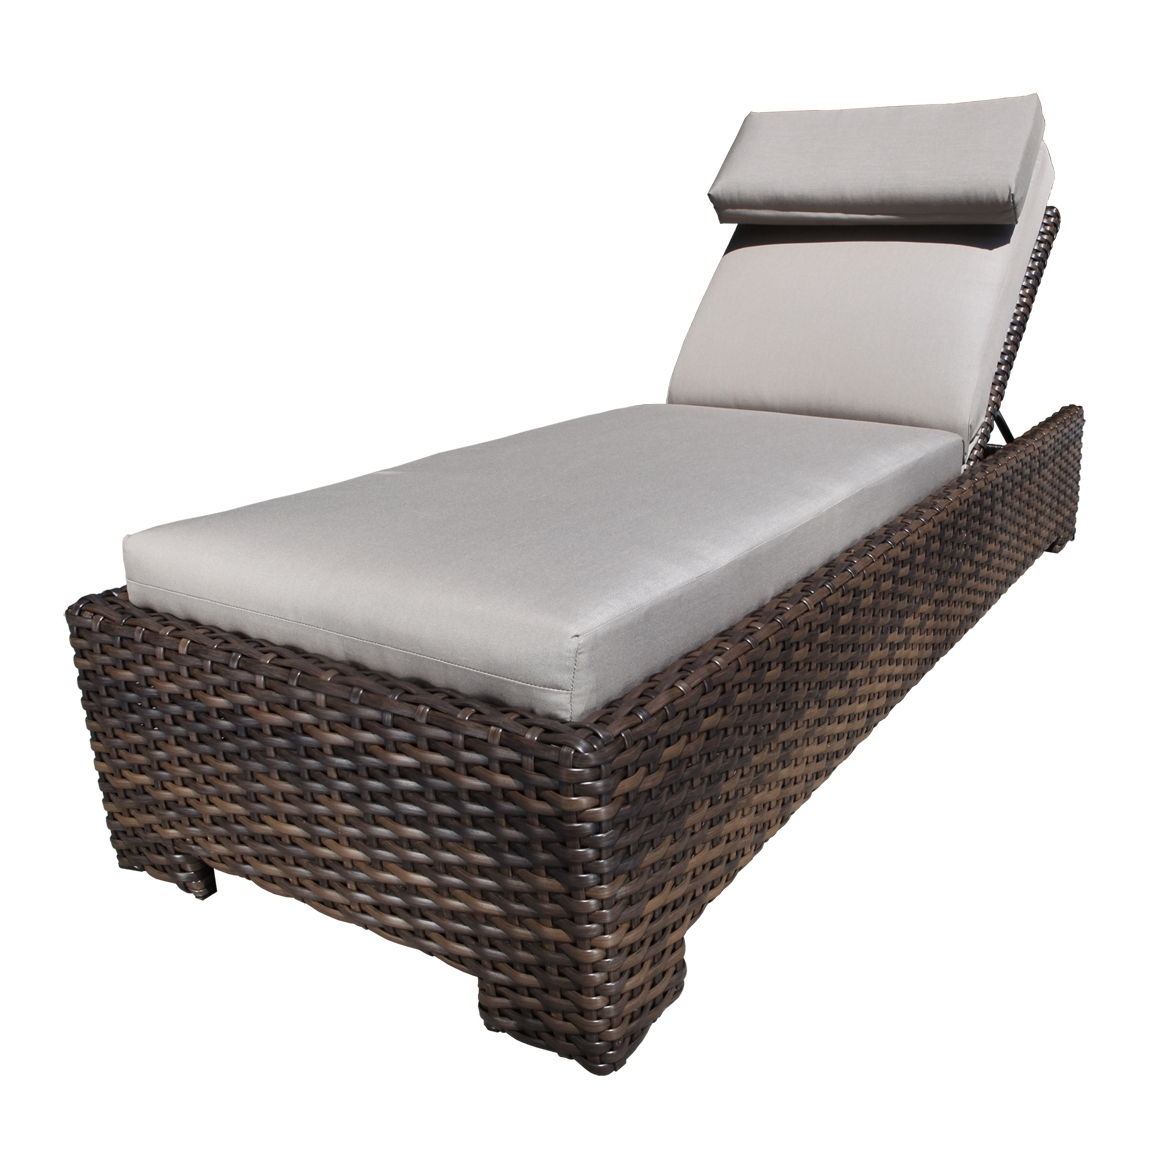 Most Recent Patio Furniture Lounge Chair • Lounge Chairs Ideas Intended For Outdoor Chaises (View 14 of 15)